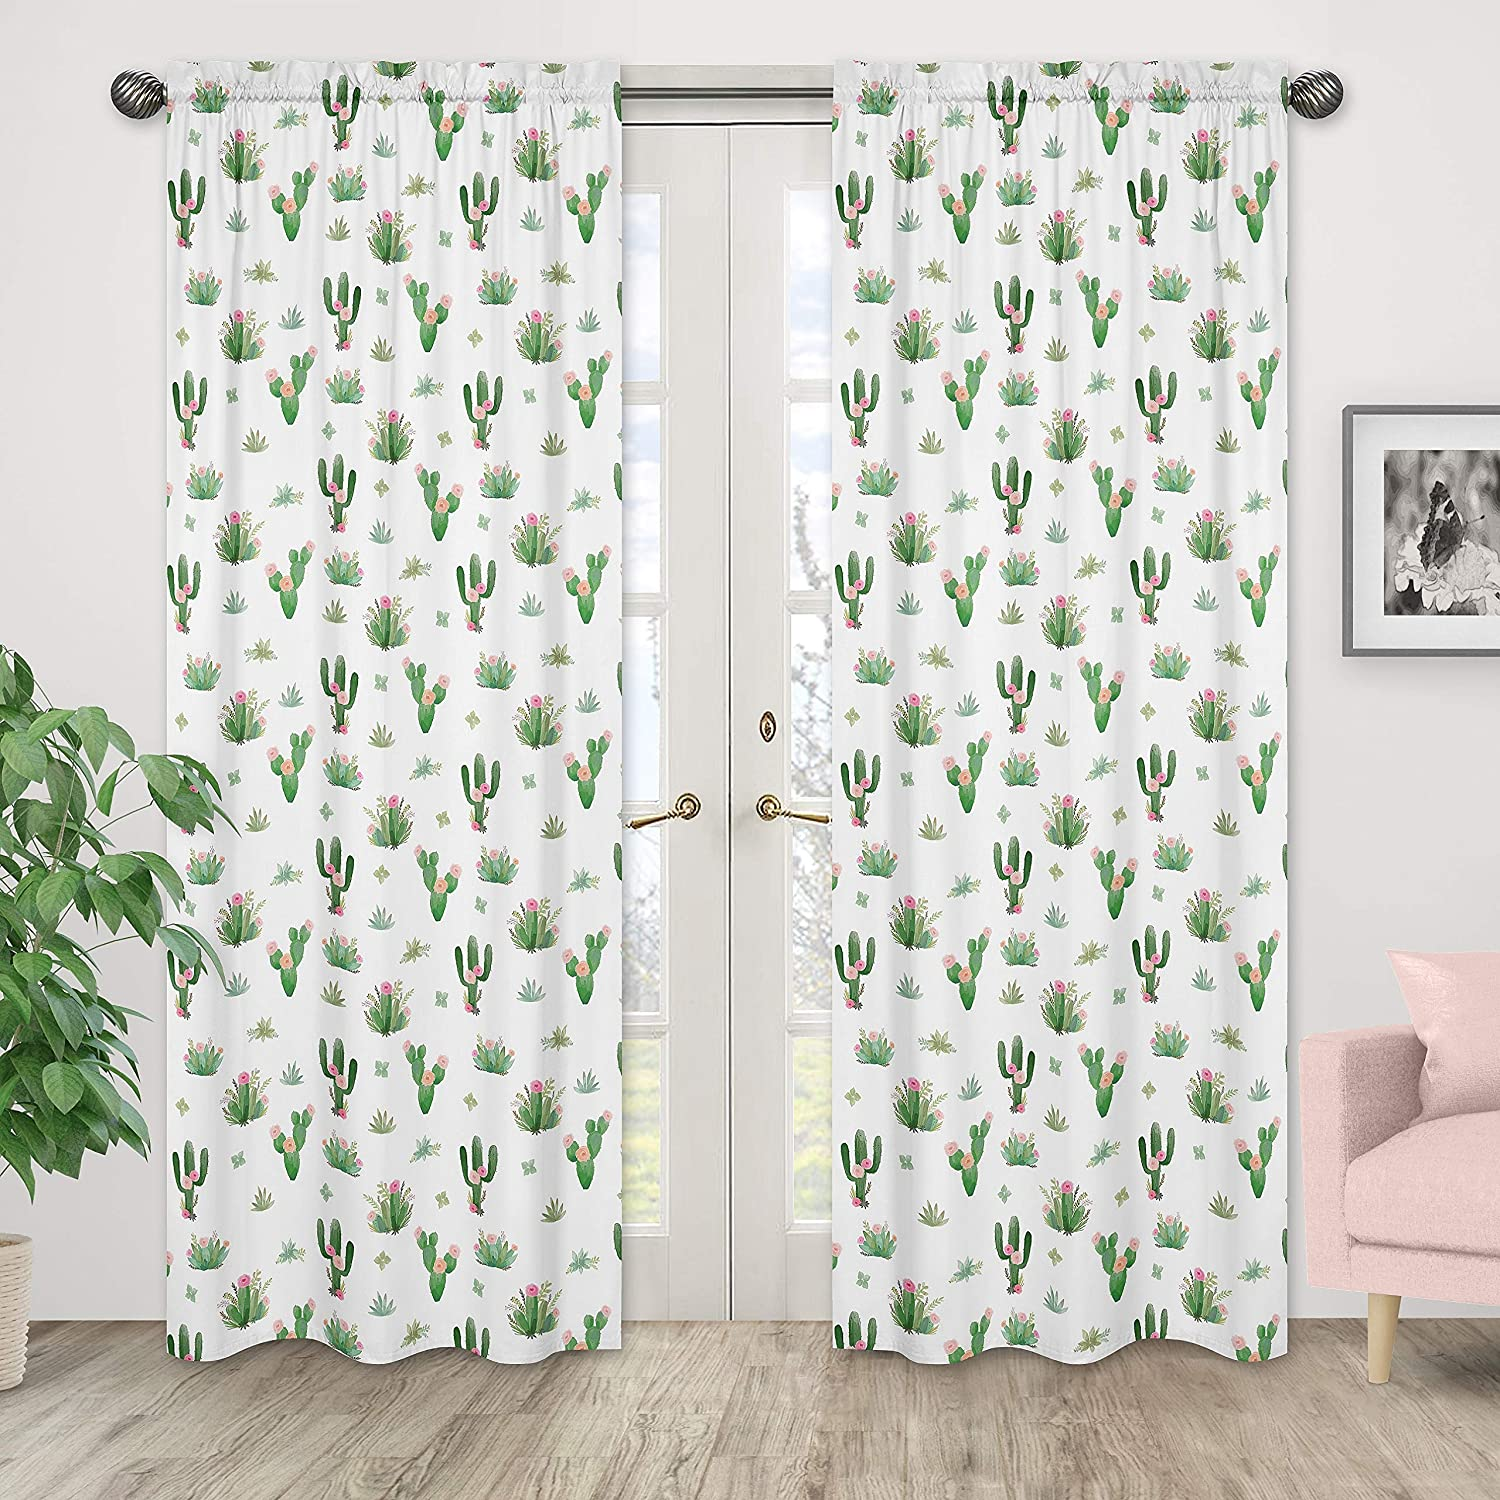 Floral Curtains drapes cactus curtains nursery curtains baby gift new born Bedding